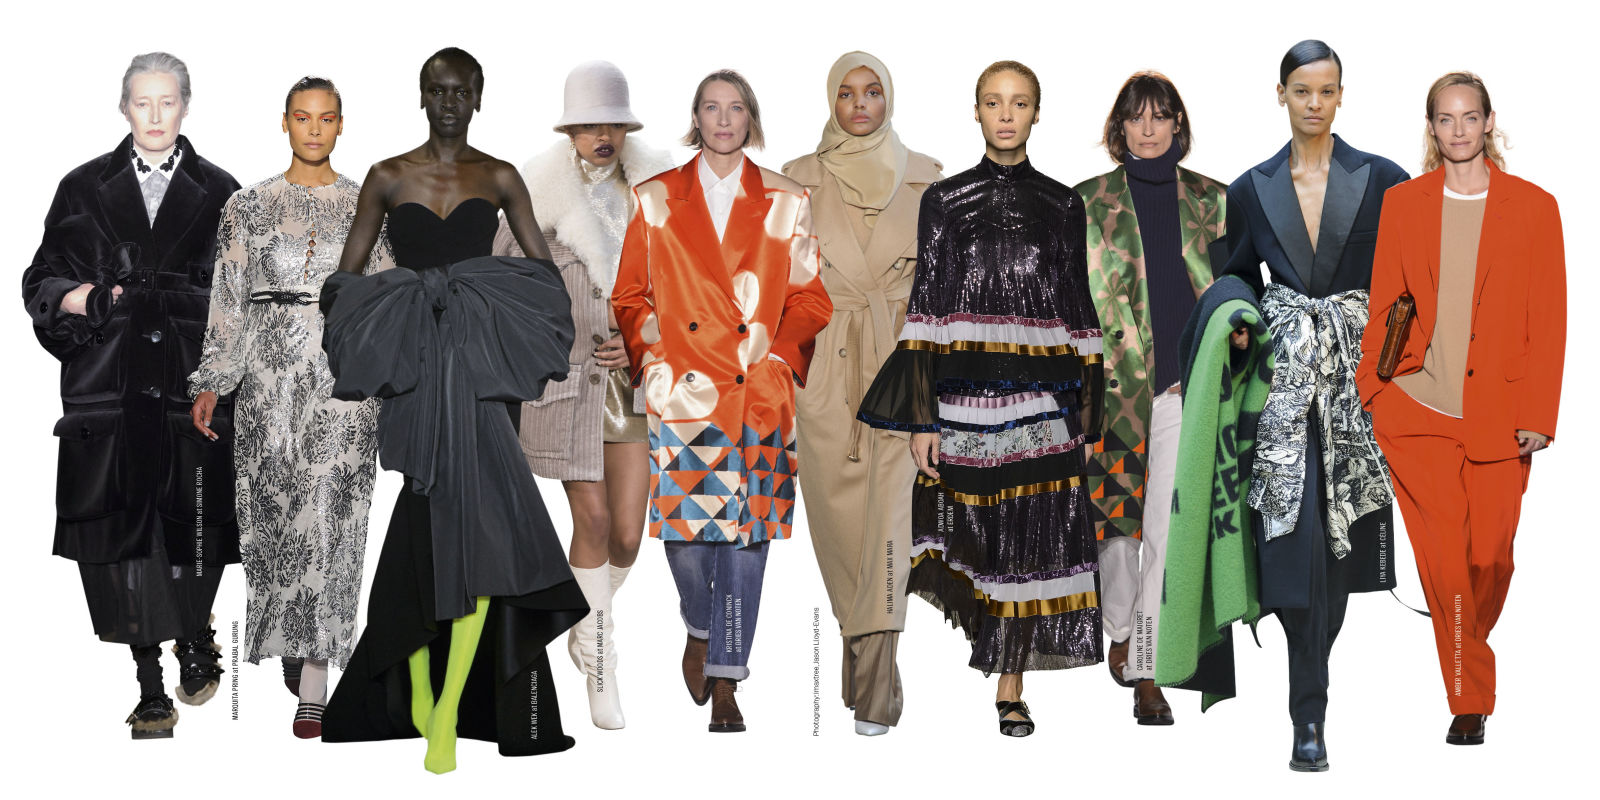 Is The Fashion World Finally Getting Diversity?